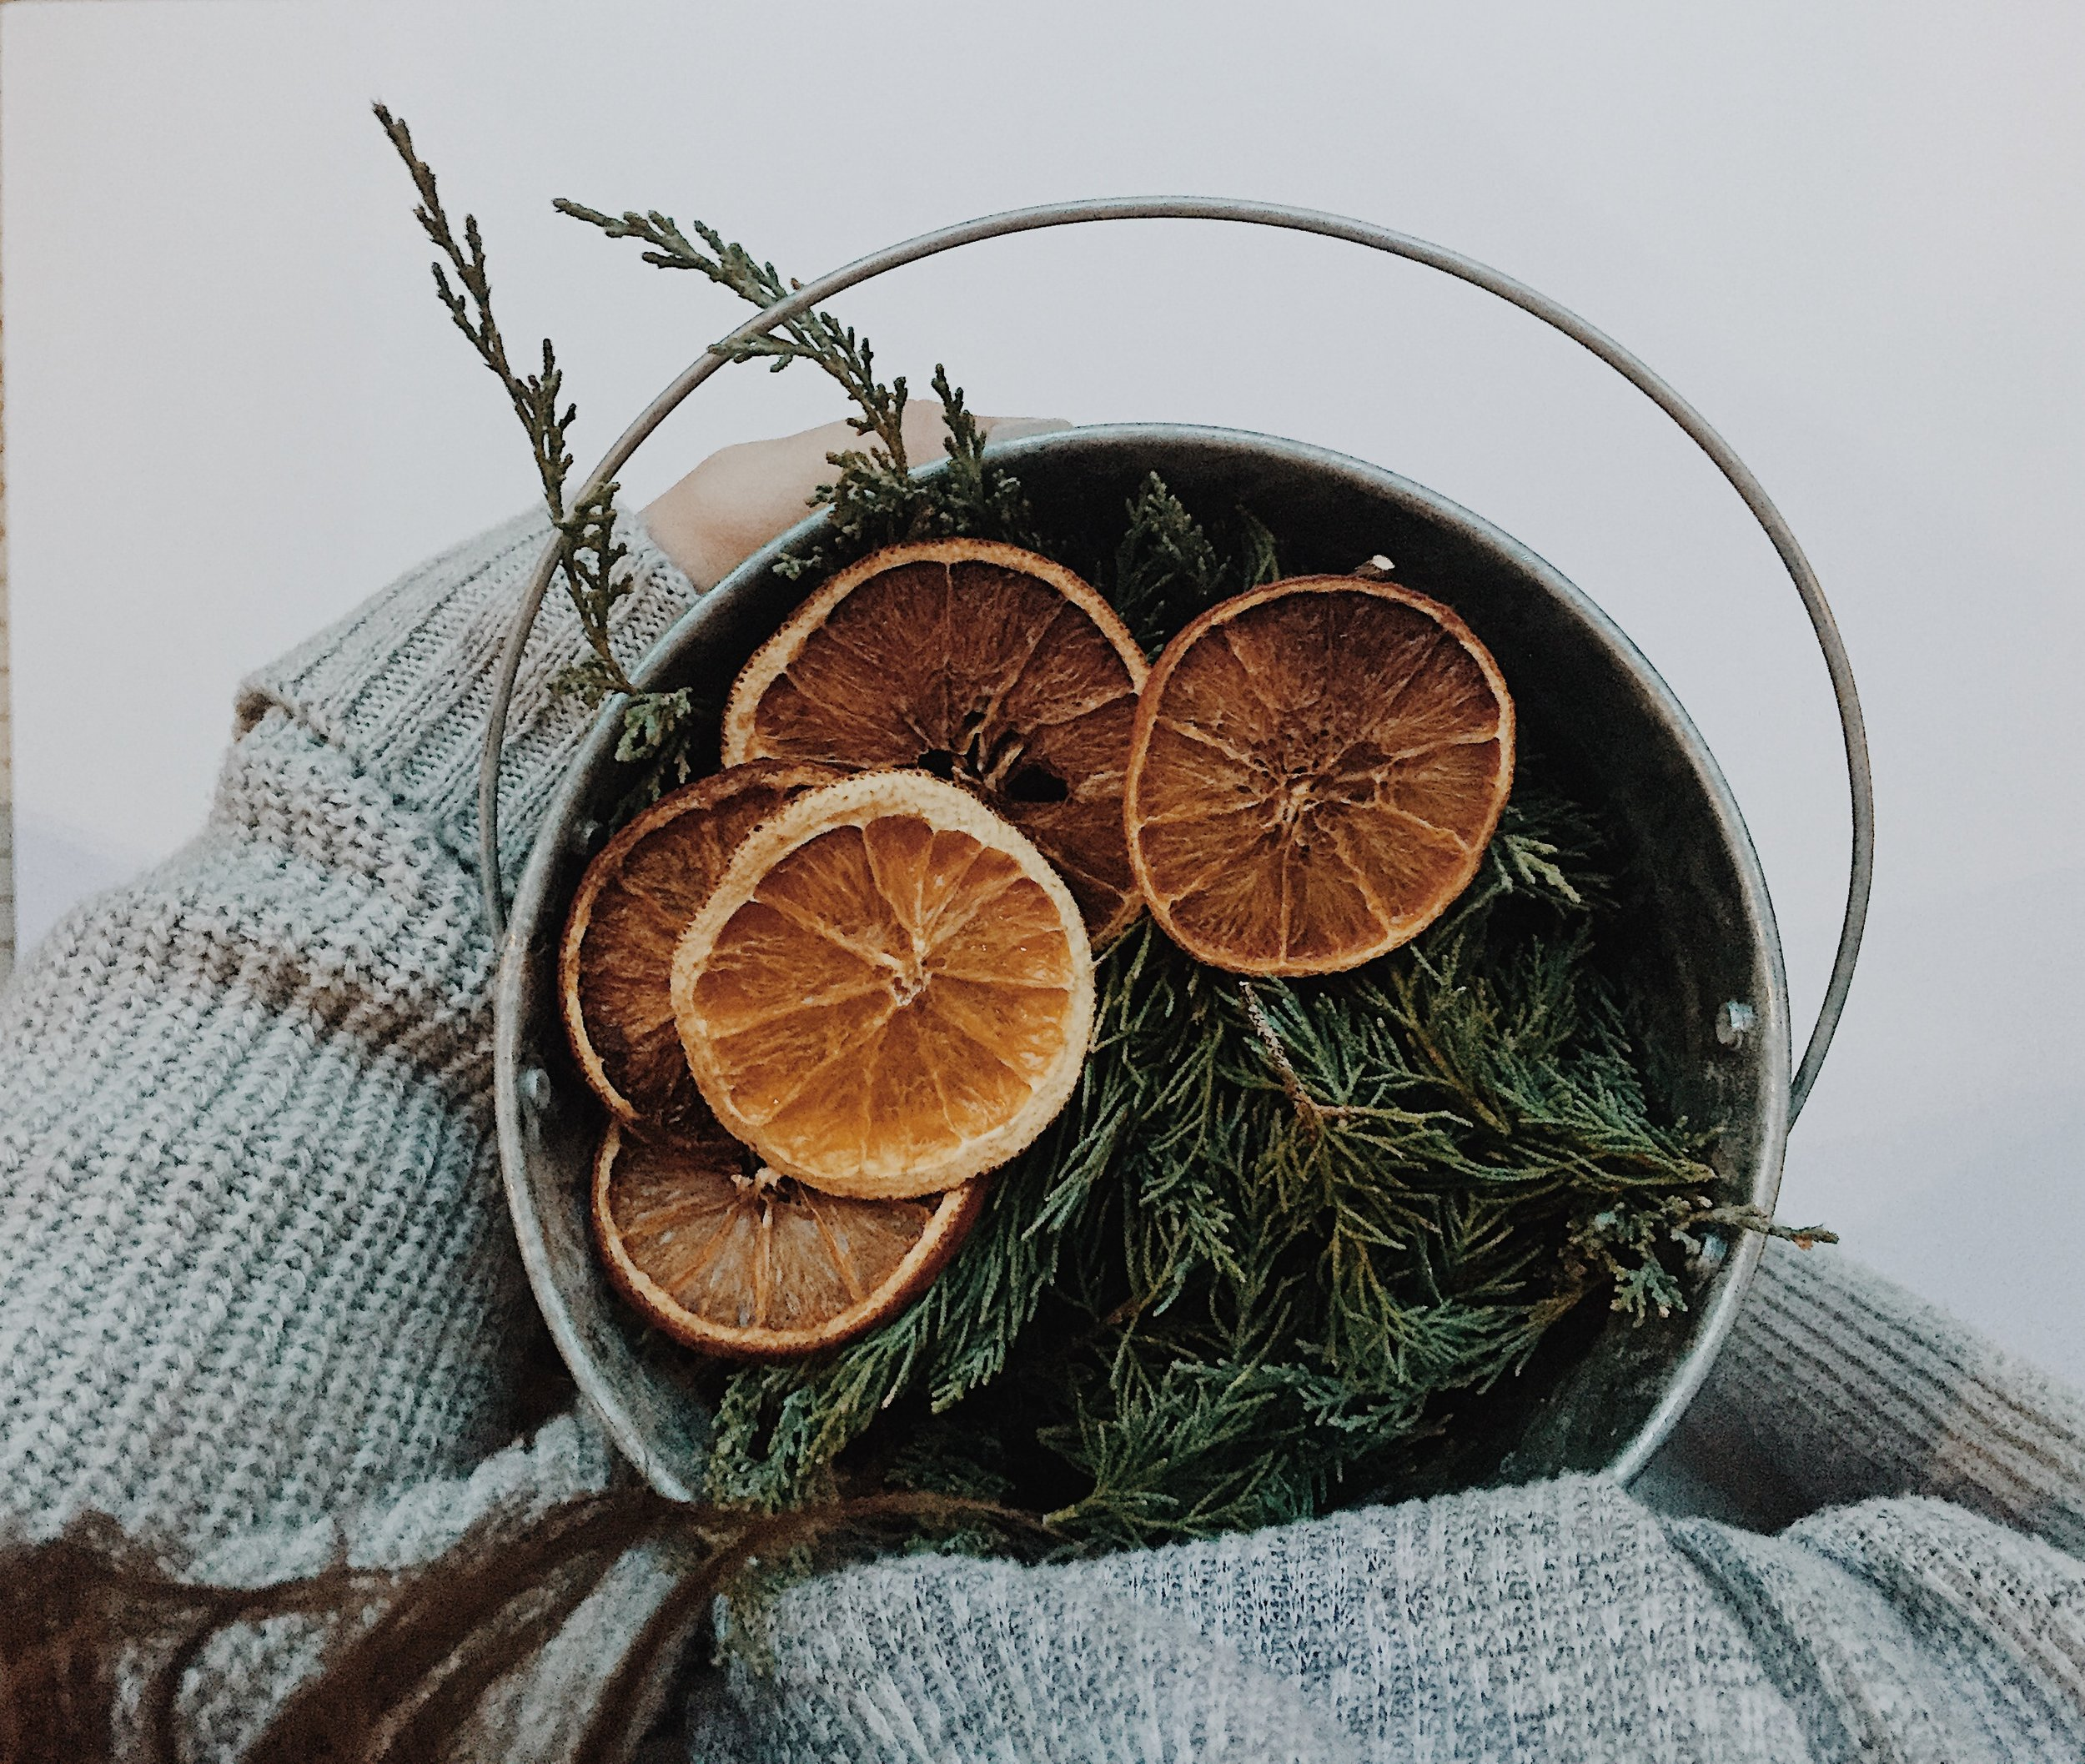 Gathering Supplies for your garland is simple. Find a legal or public place to trim cedar, gather a few pieces (not much is needed).  Purchase orange slices from your local grocer.  Some groceries also sell holiday greenery during December.